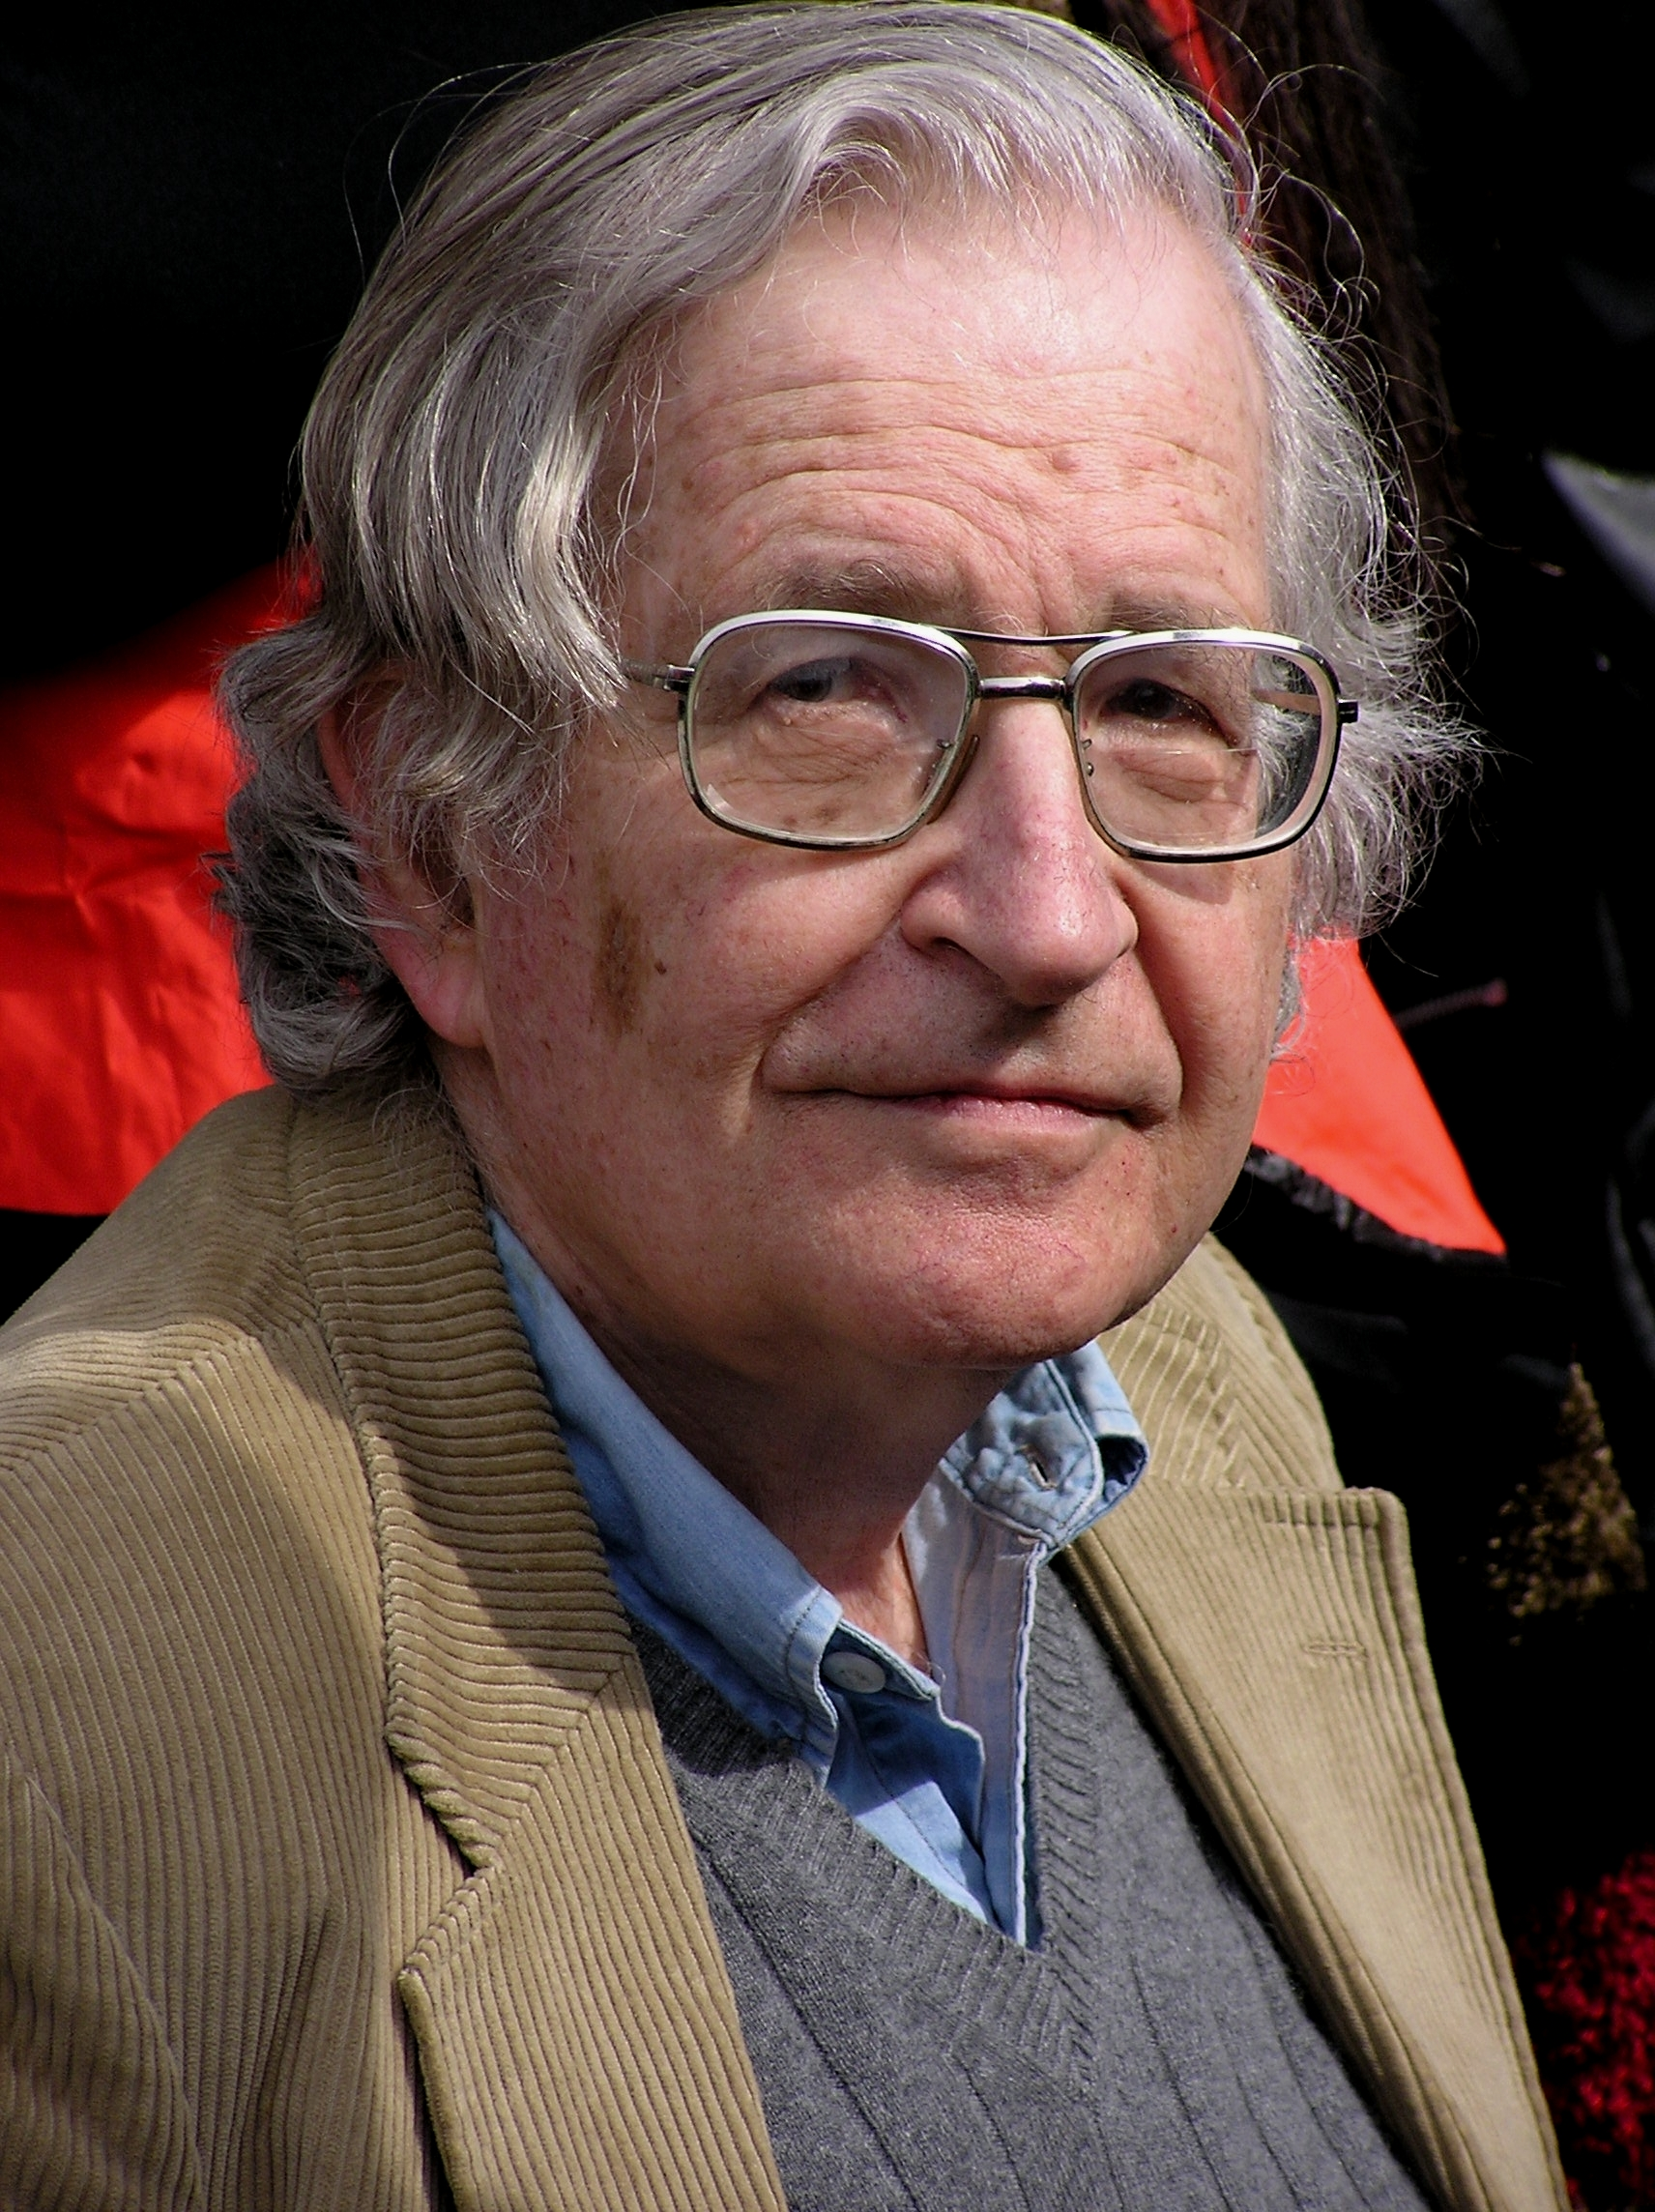 noam chomsky essays noam chomsky essays noam chomsky essays papi noam chomsky essays papi my ip mepolitical positions of noam chomsky political positions of noam chomsky